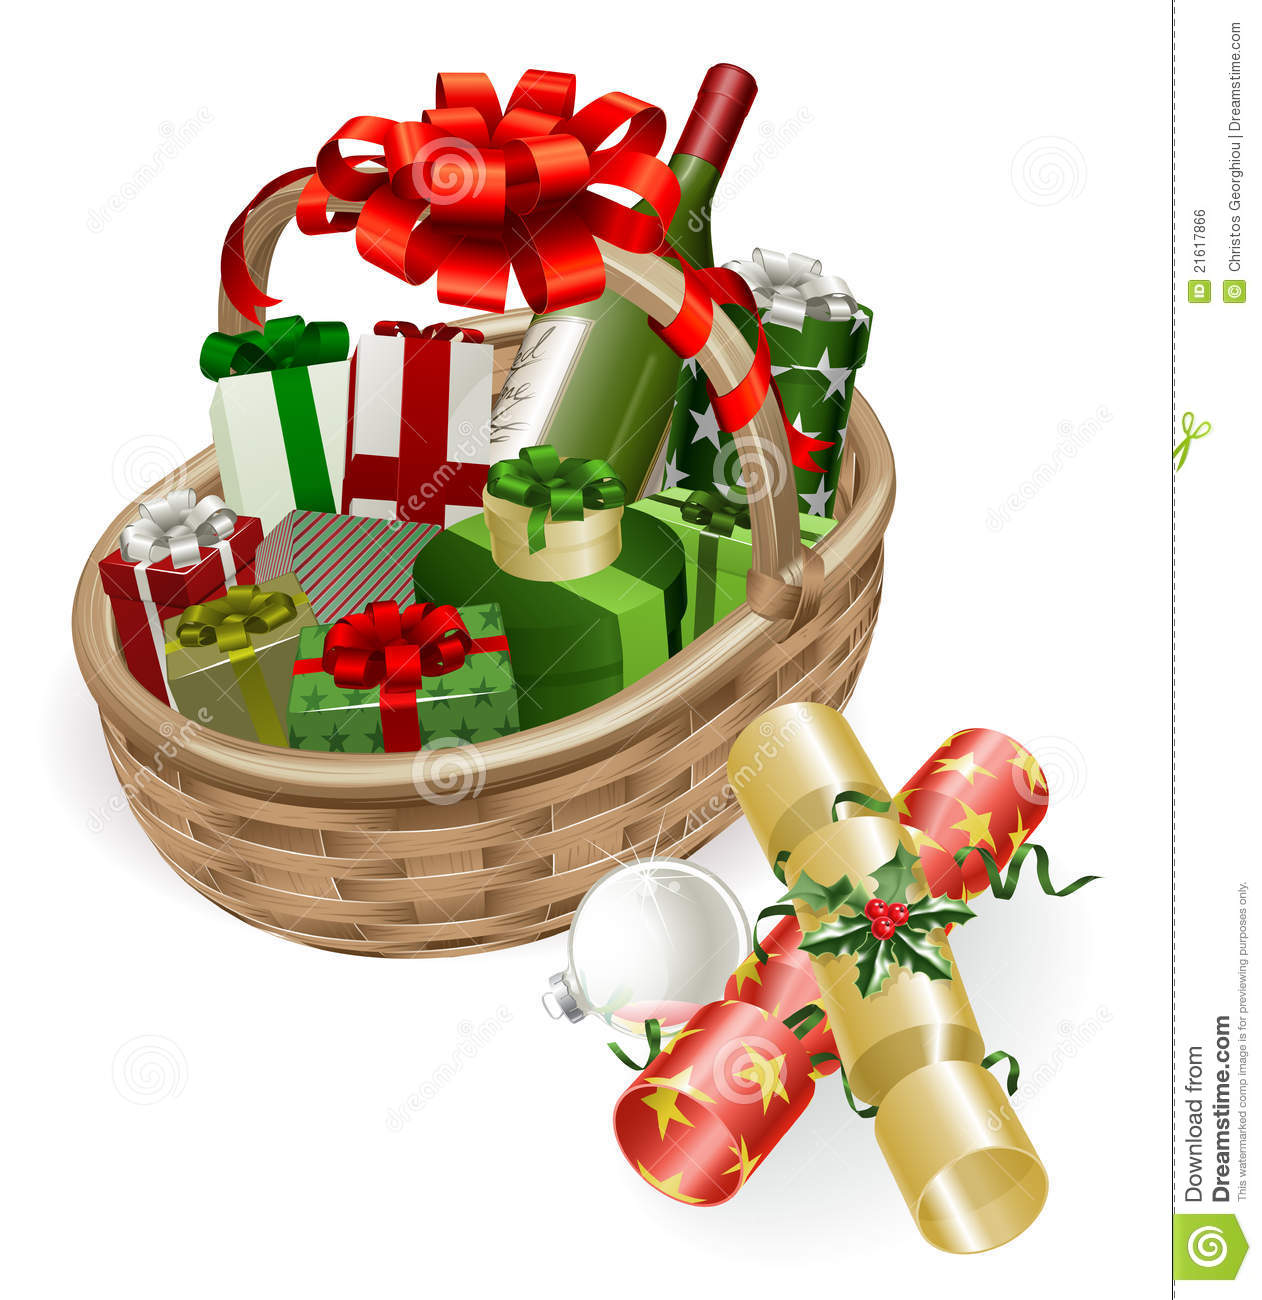 12+ Gift Basket Clipart - Preview : Gift Basket T Bas | HDClipartAll